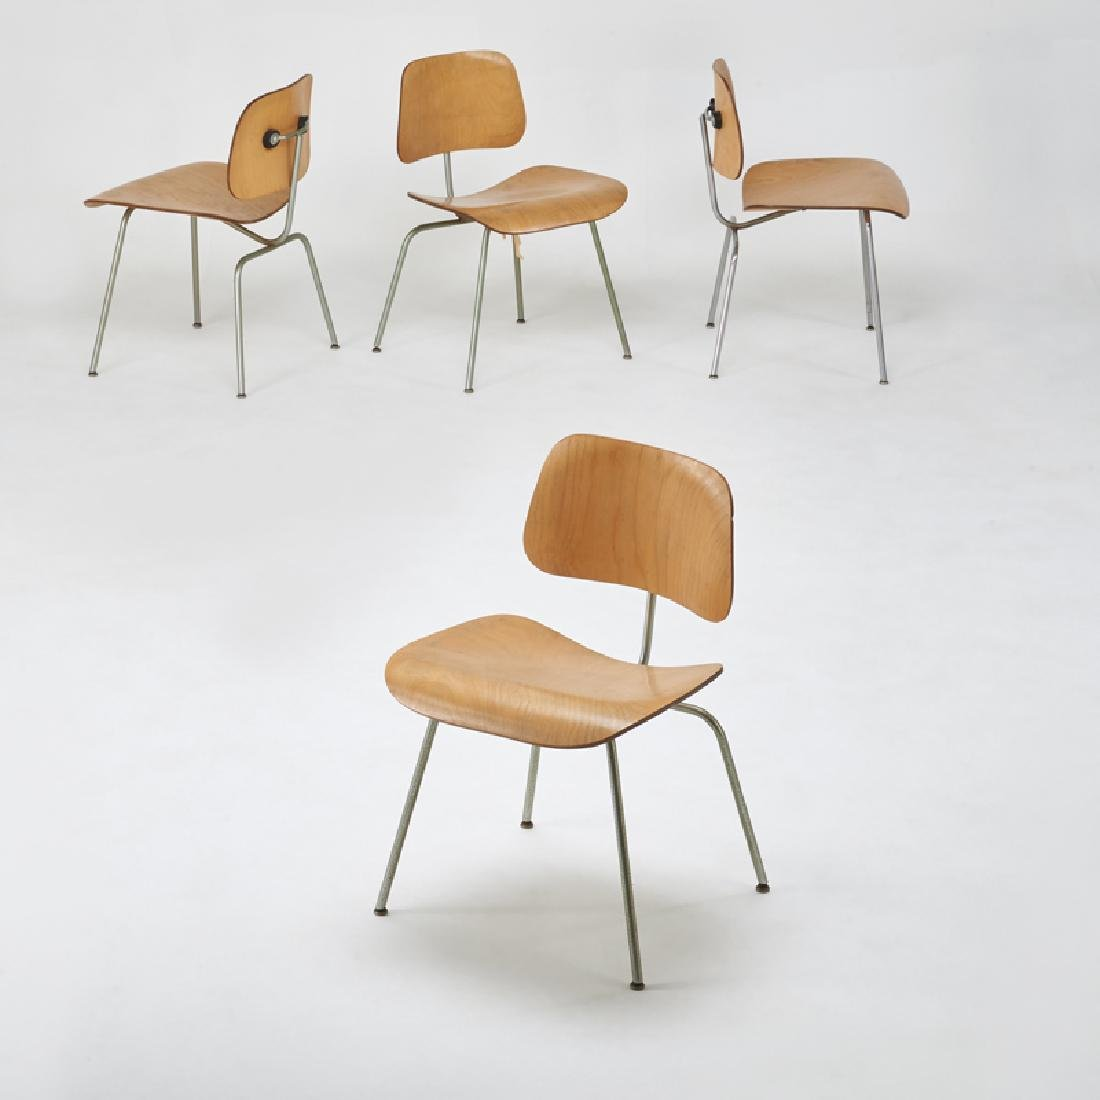 CHARLES & RAY EAMES; GEORGE NELSON/HERMAN MILLER